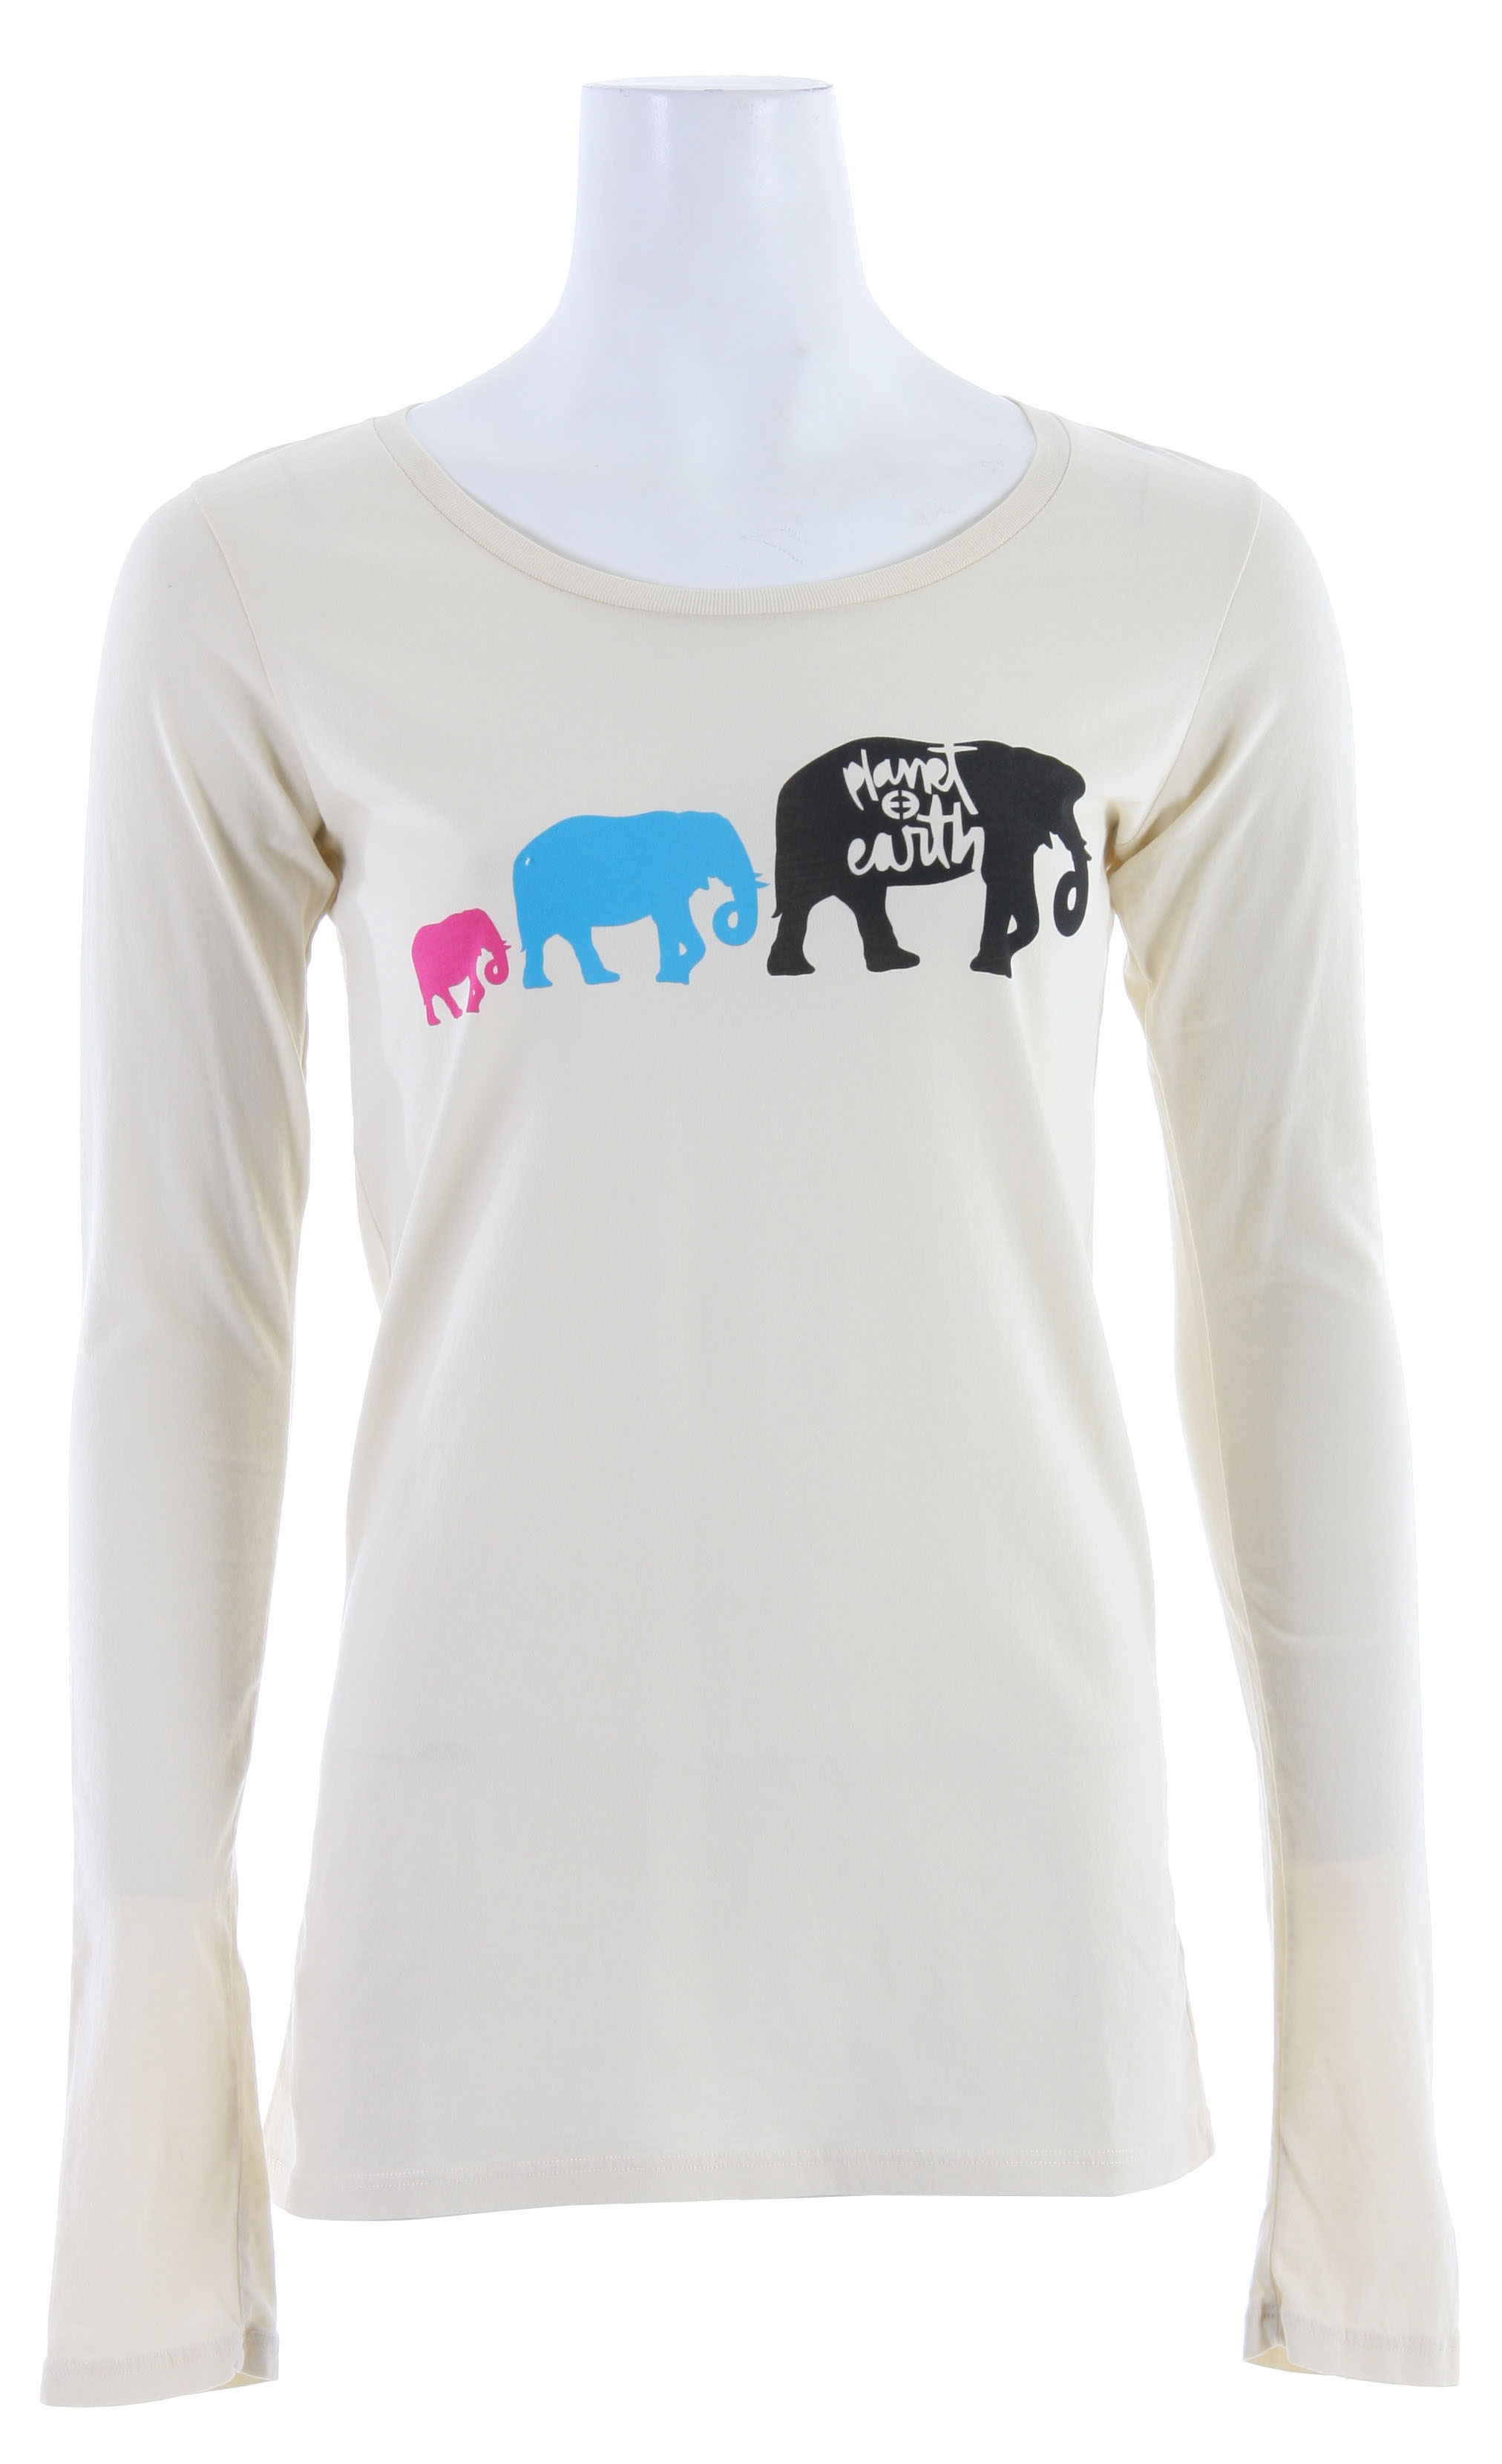 The Planet Earth Elie L/S T-Shirts are 51% organic cotton blended with 49% virgin cotton and embellished with formaldehyde-free inks and dyes for an environmentally friendly finished product. - $9.95